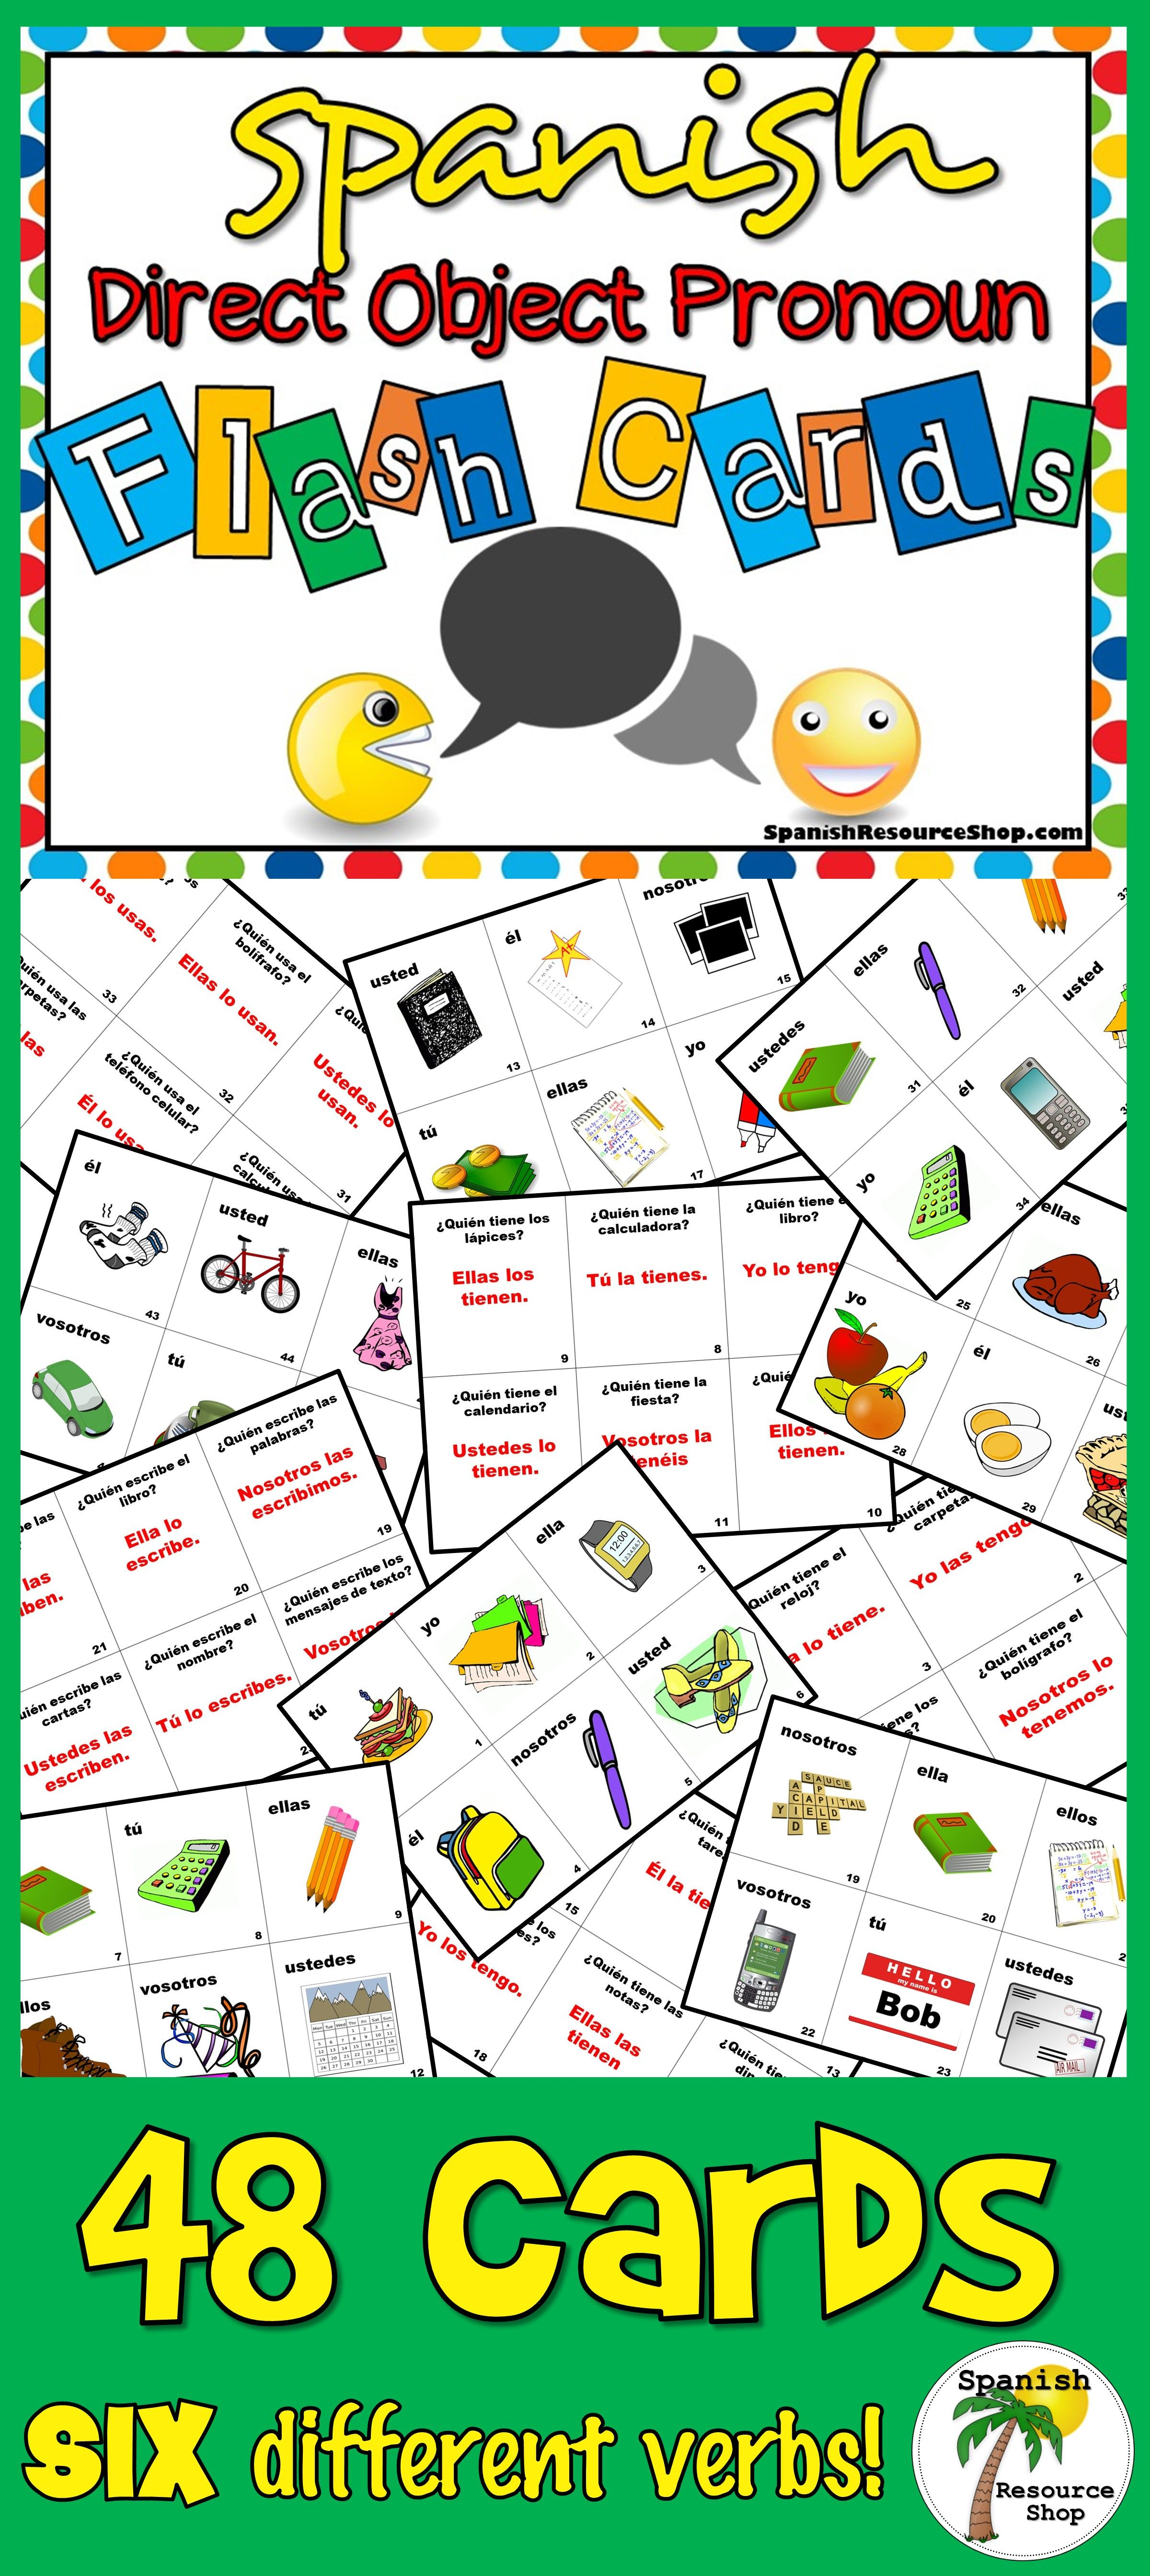 Spanish Direct Object Pronouns Flashcards